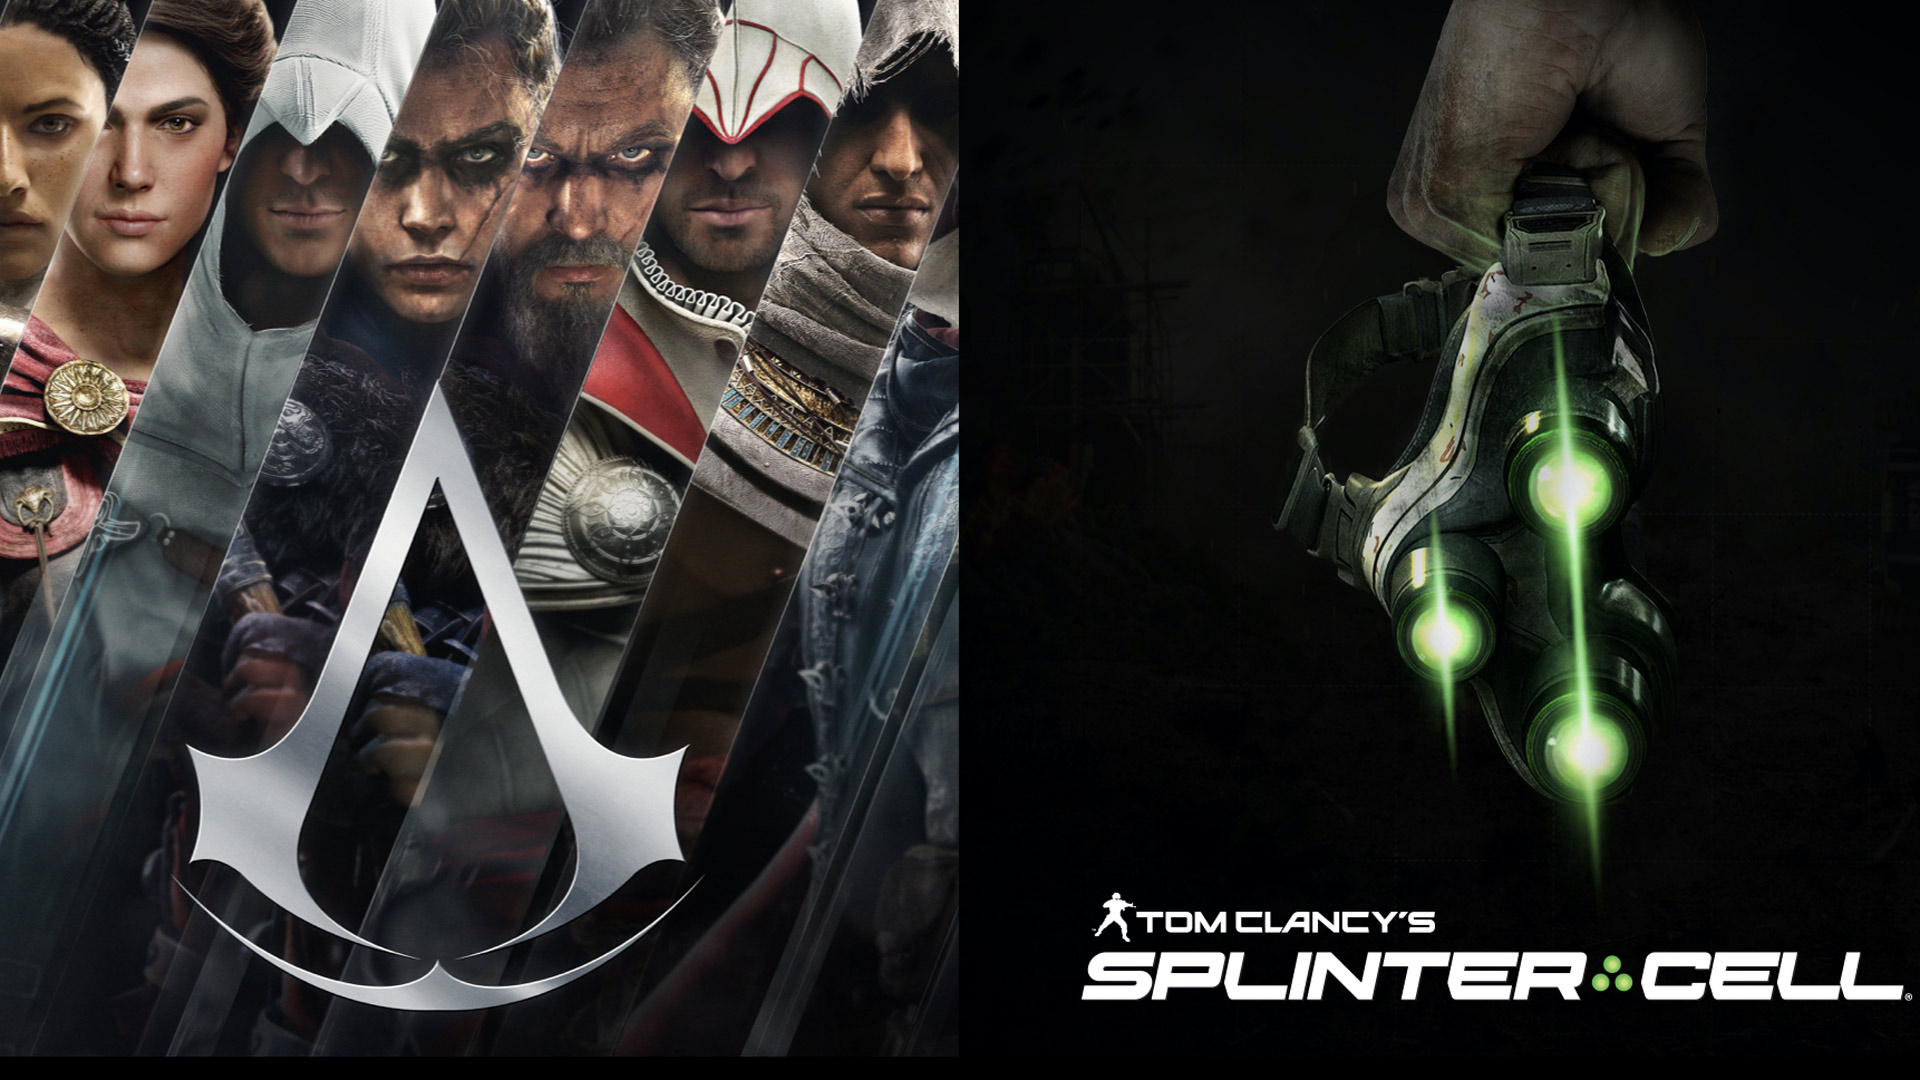 《Assassin's Creed & Splinter Cell》(刺客信条:分裂细胞)